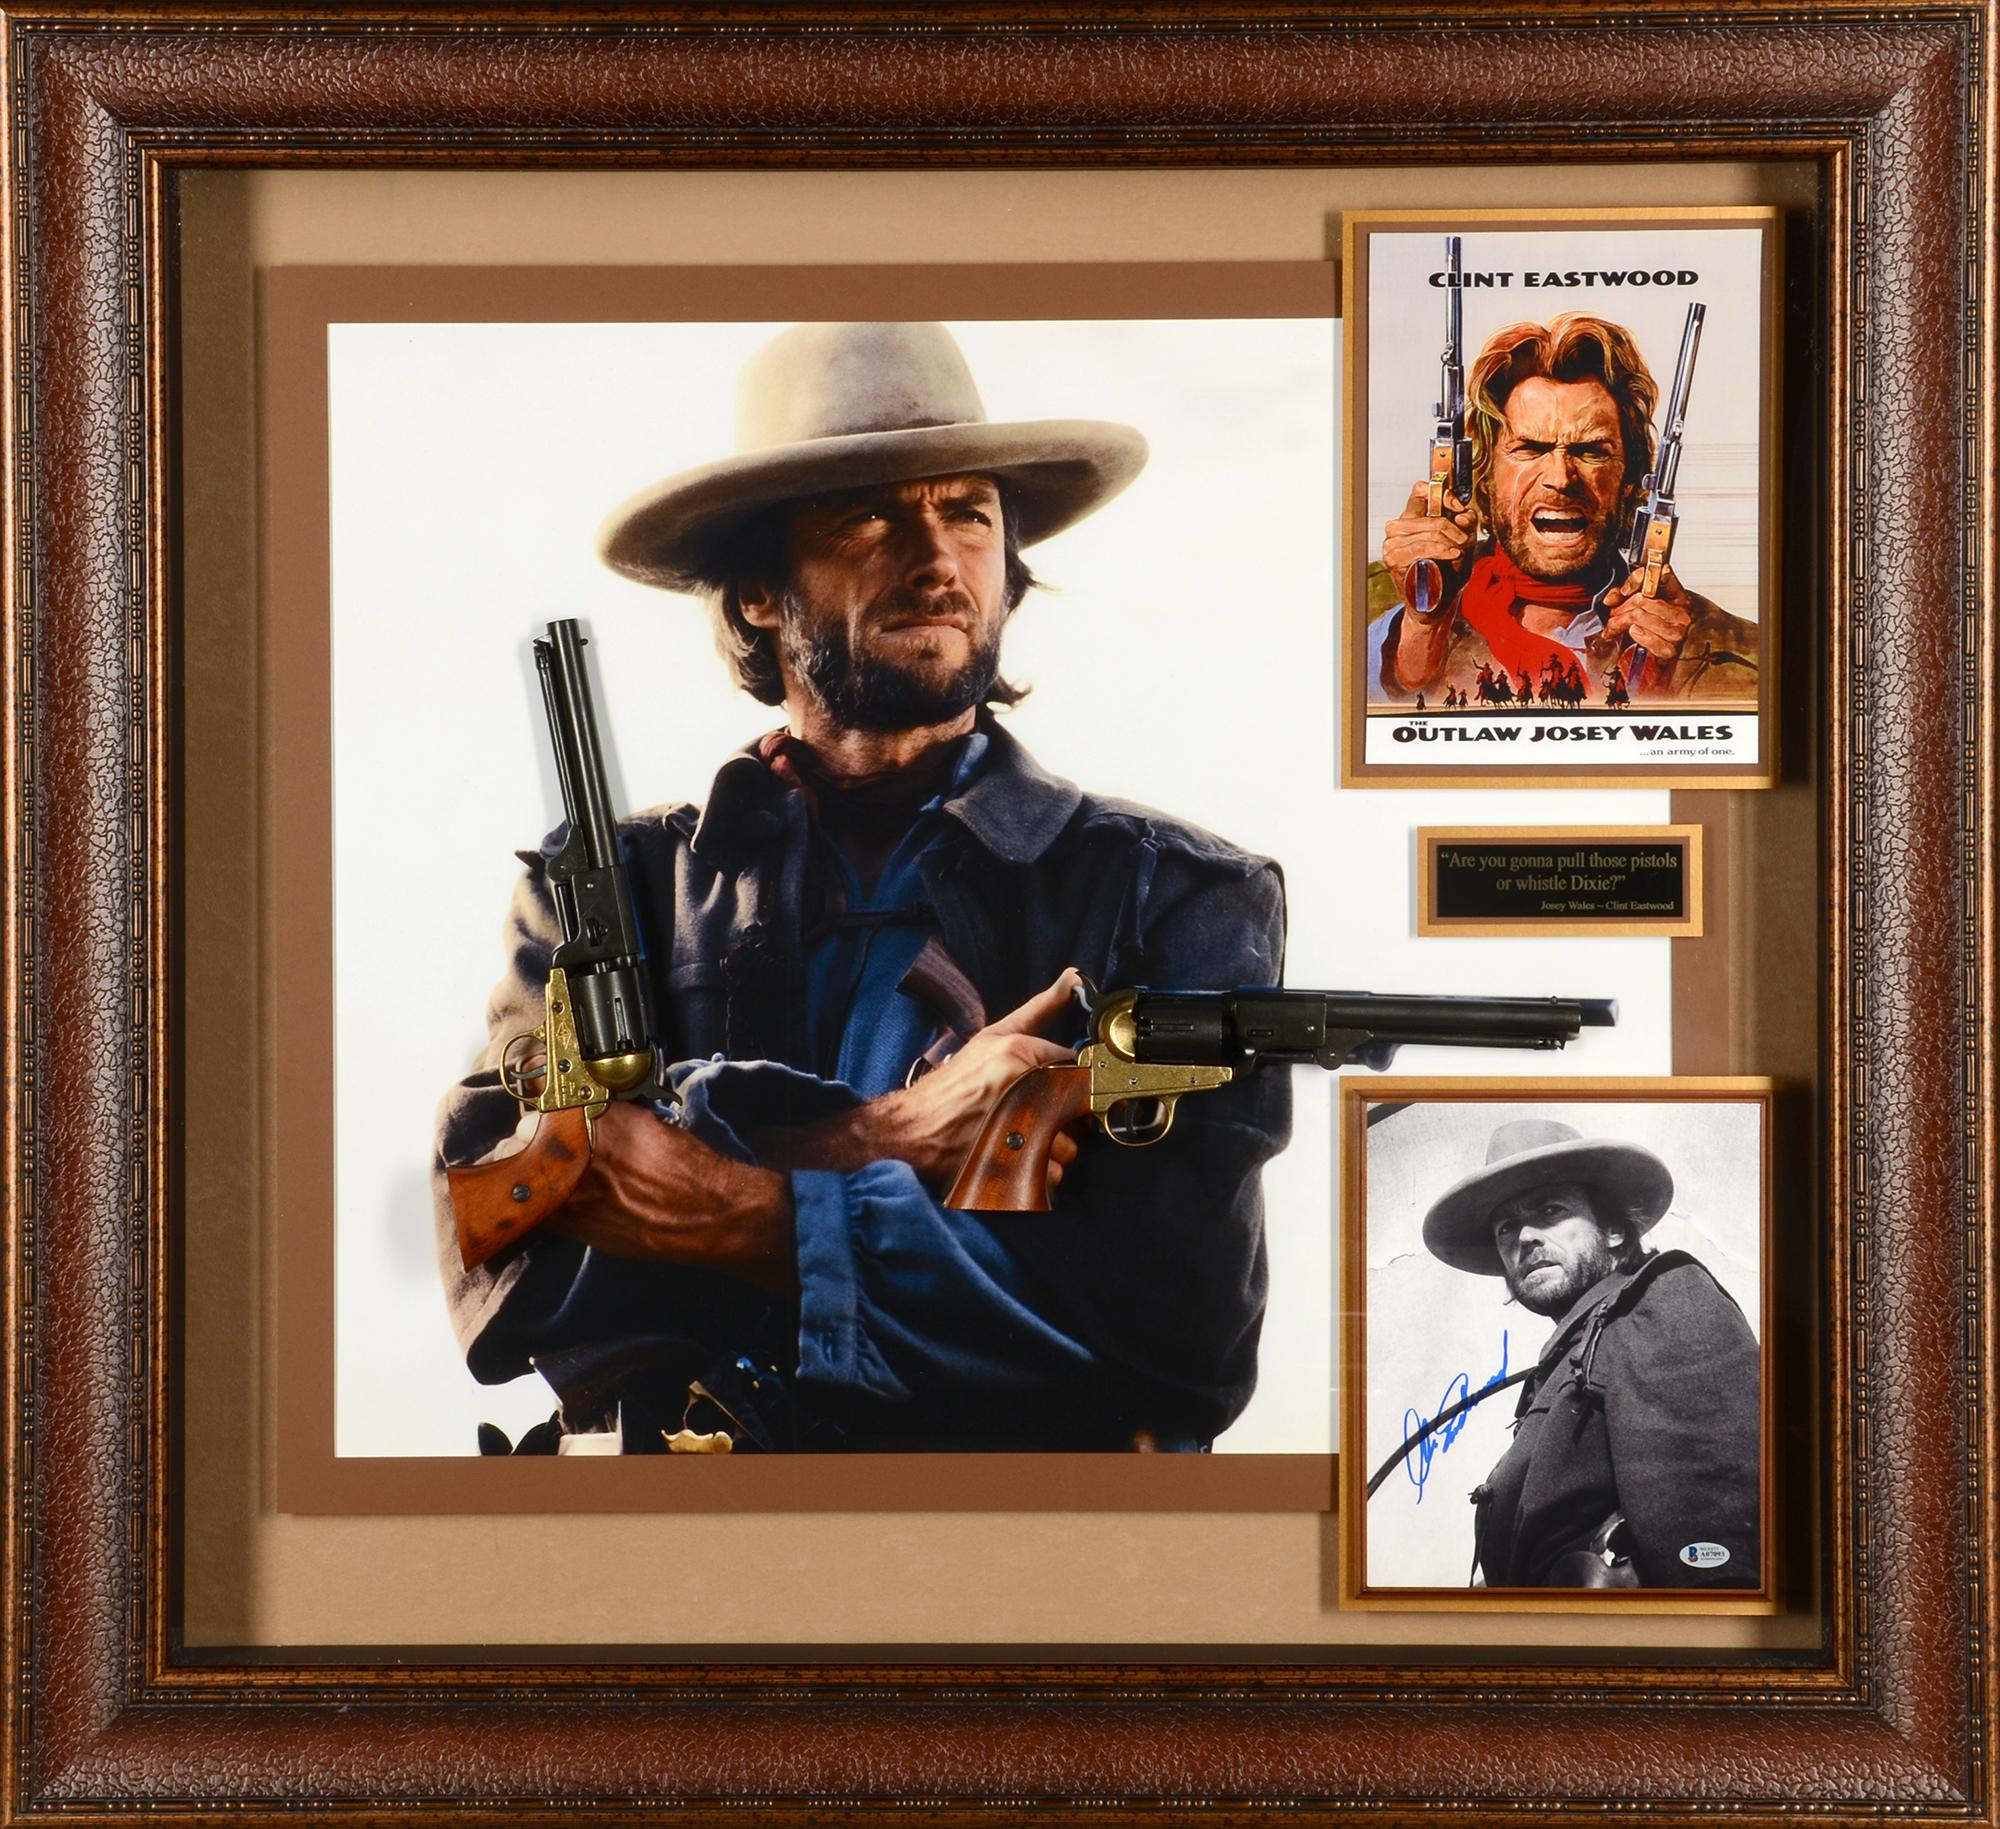 Autographed Clint Eastwood Memorabilia: Signed Photos & Other Items